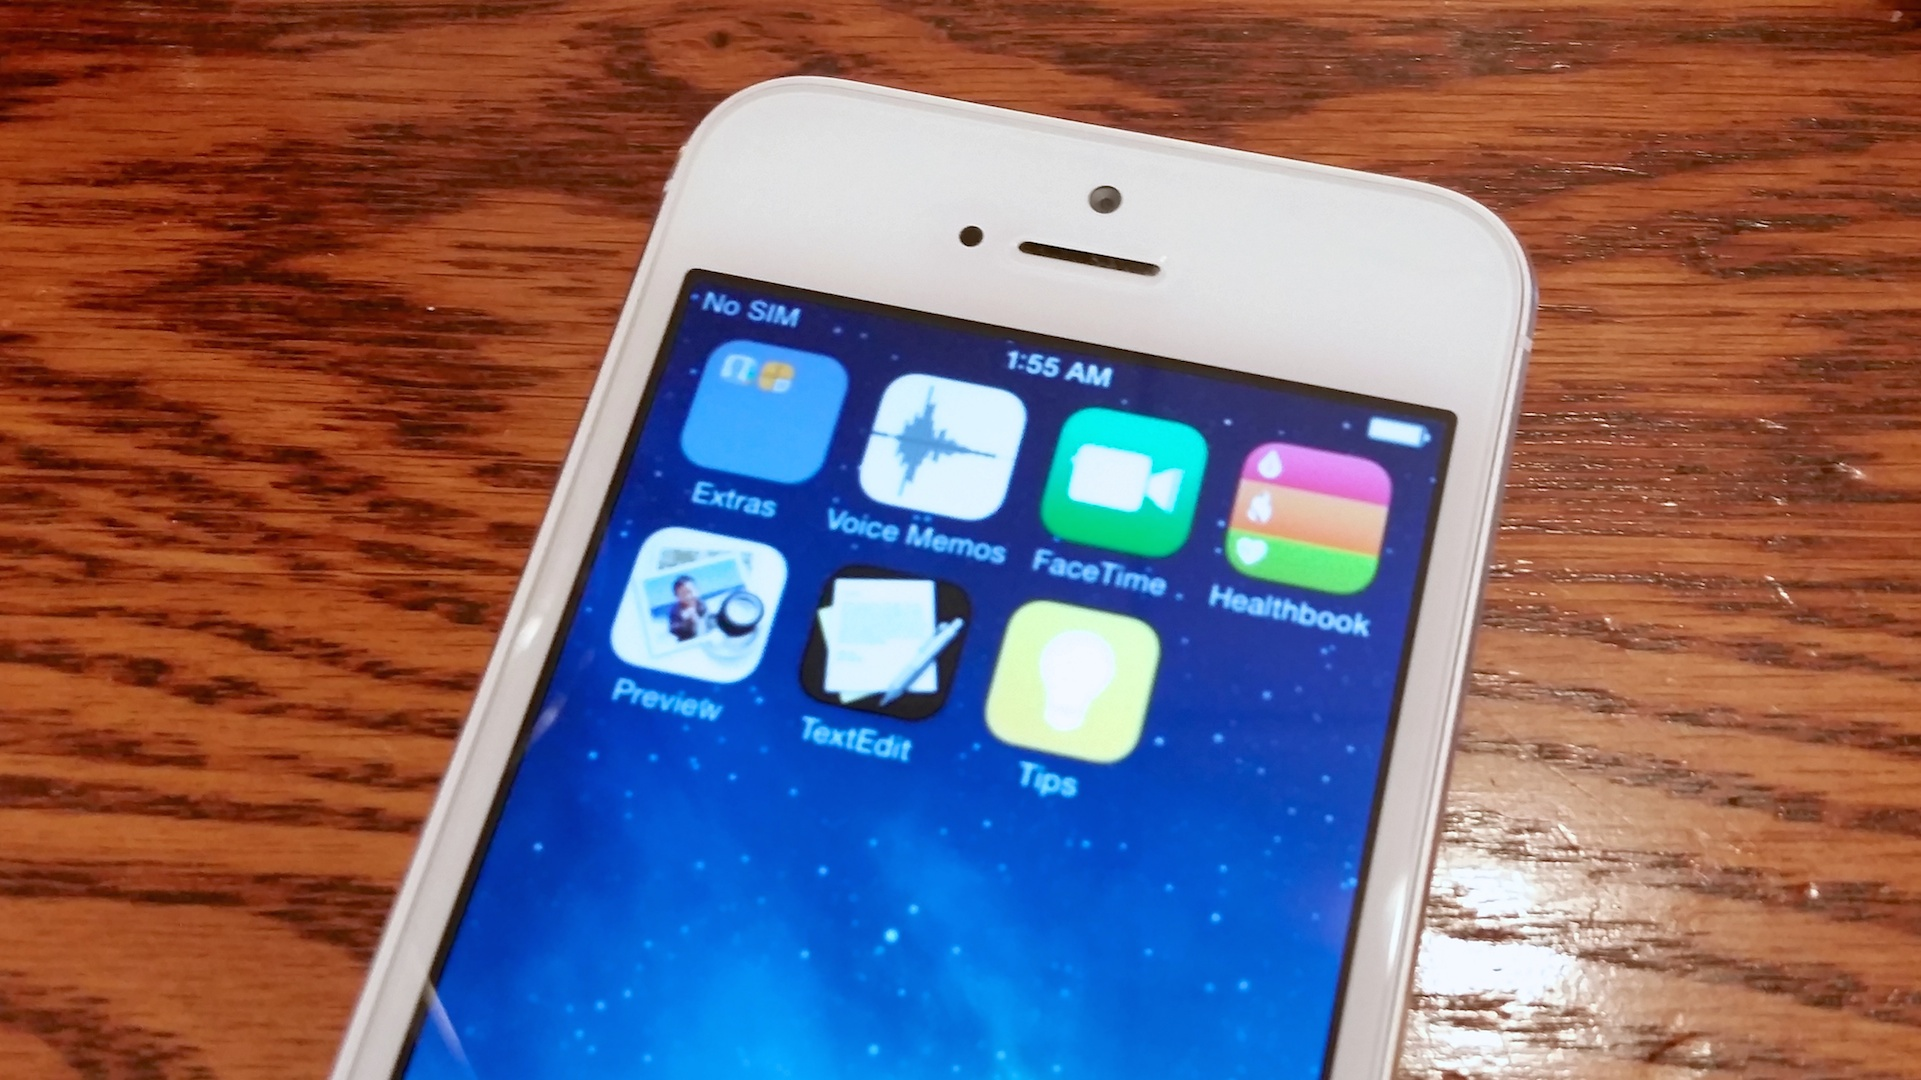 iOS 8: What We Know Ahead of WWDC 2014 – Gotta Be Mobile